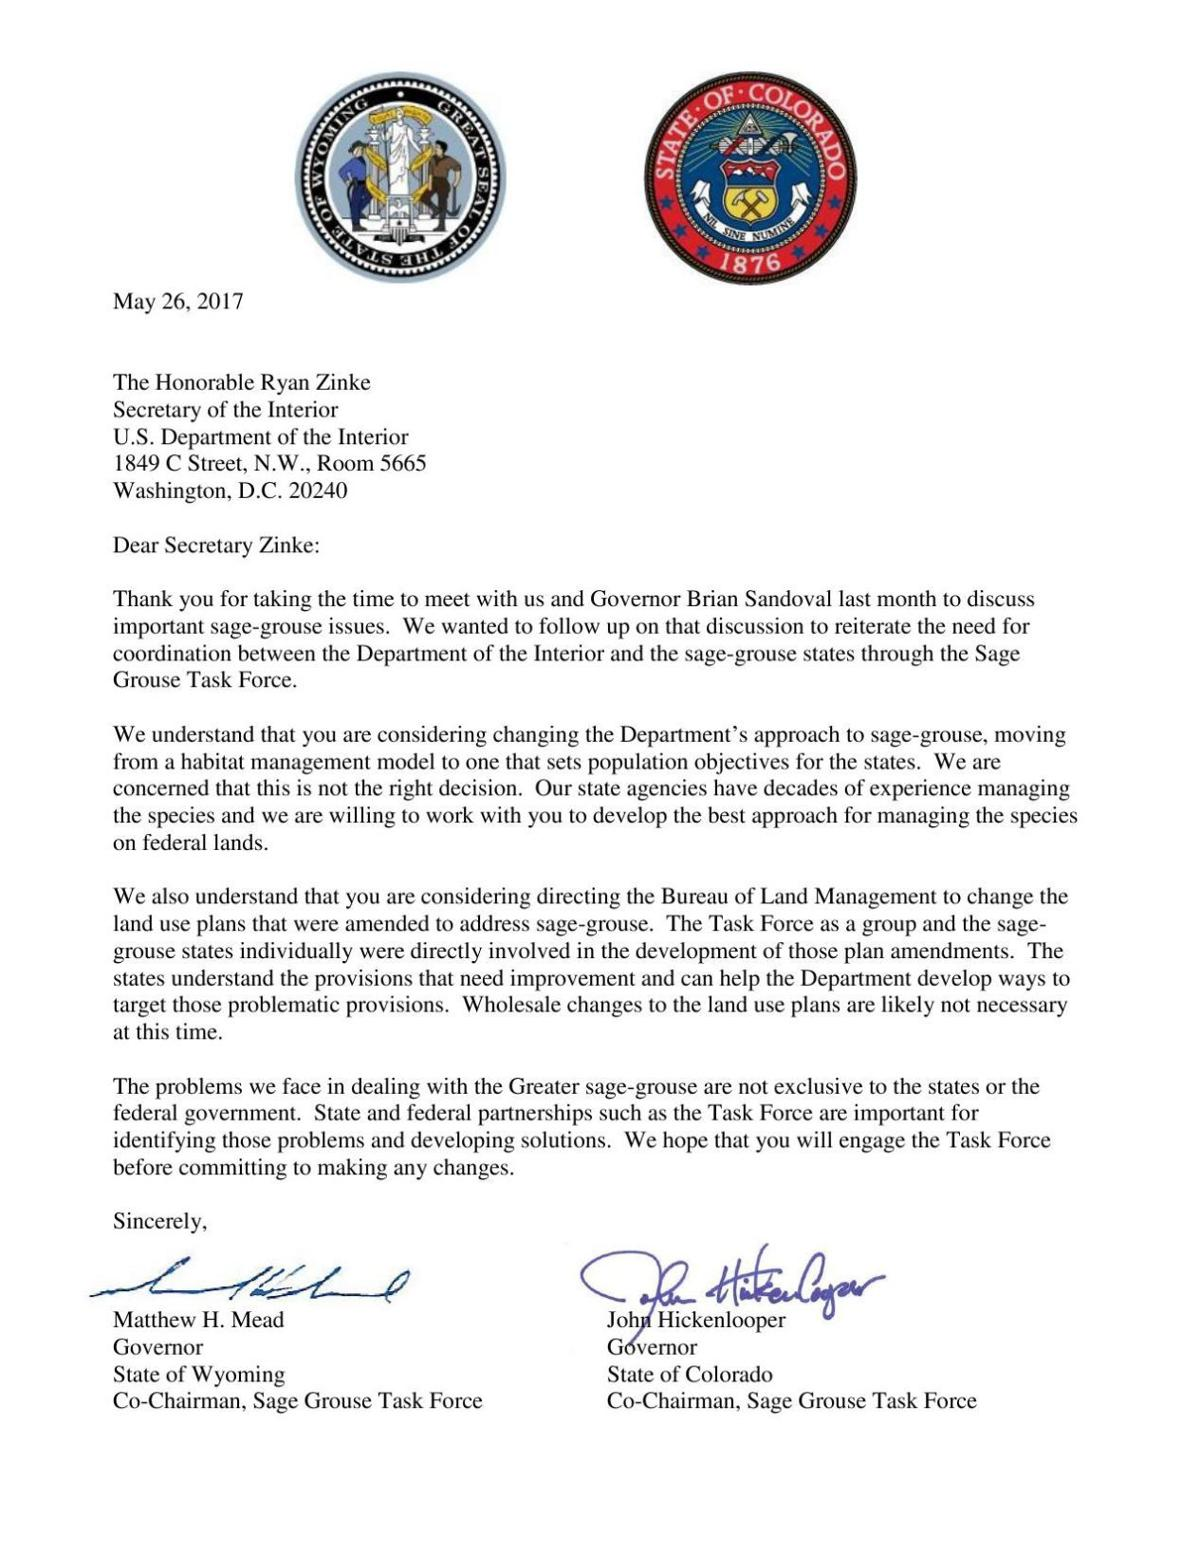 Governors' letter to Secretary Zinke